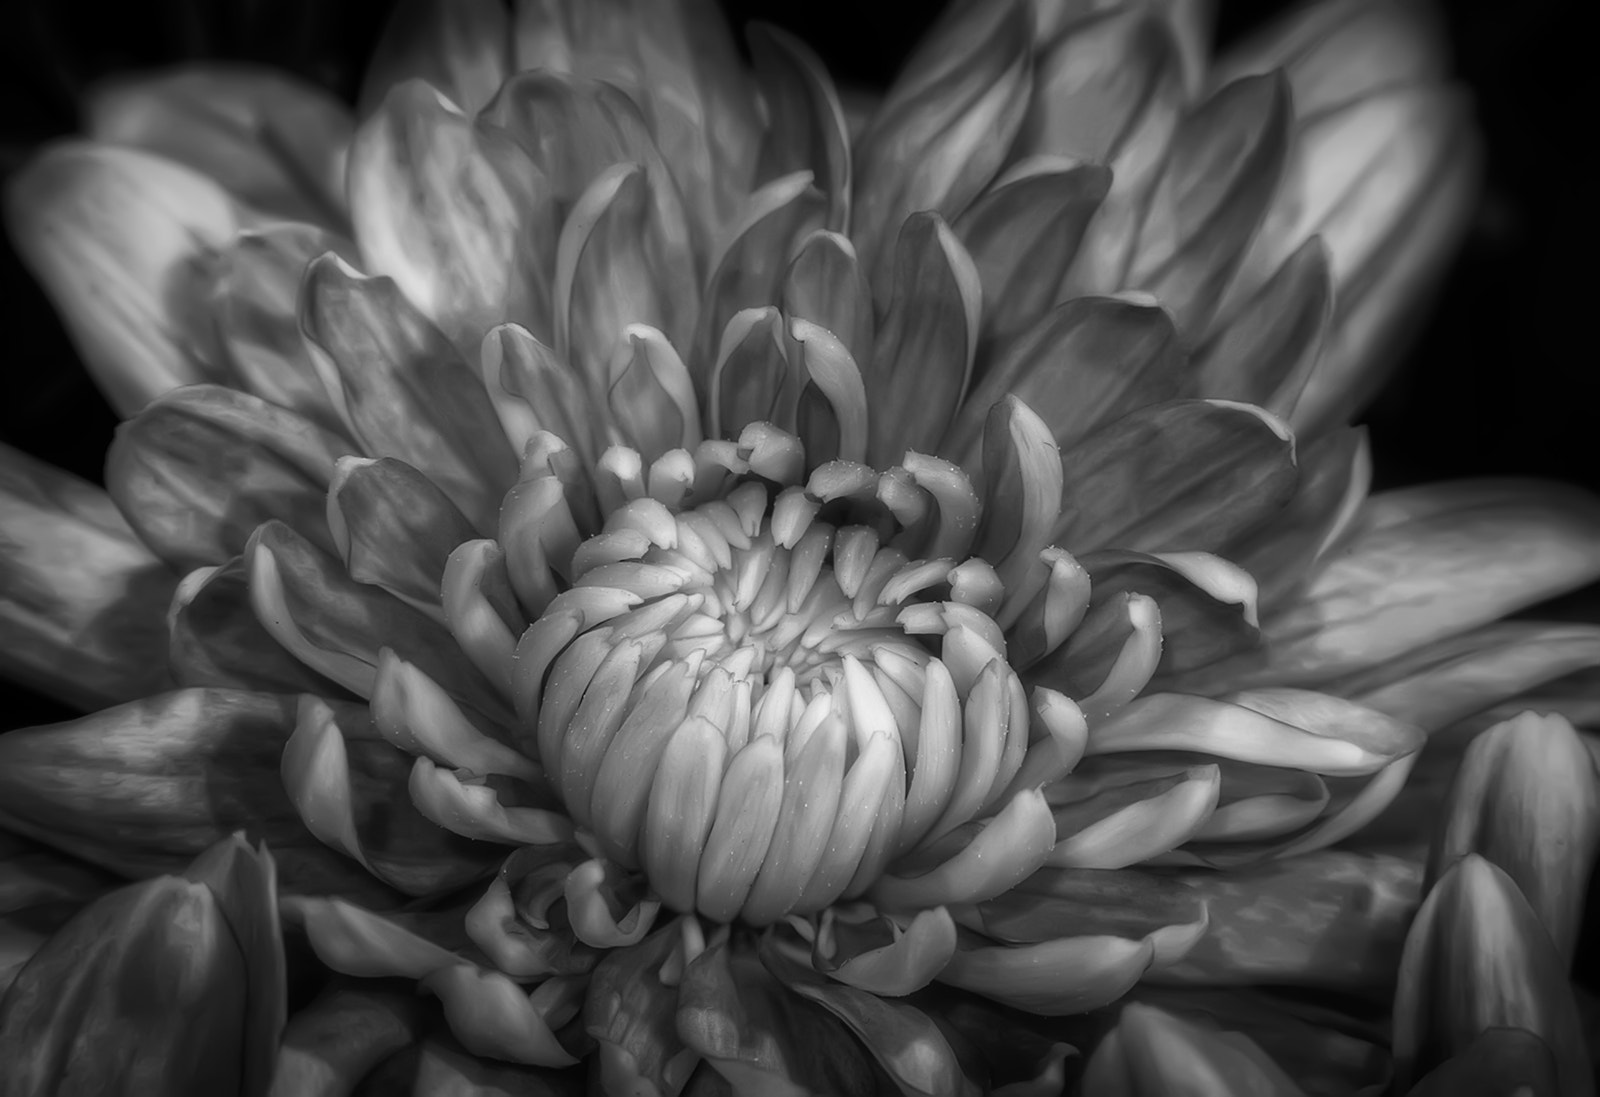 Photograph Chrysanthemum by Scott Norris on 500px